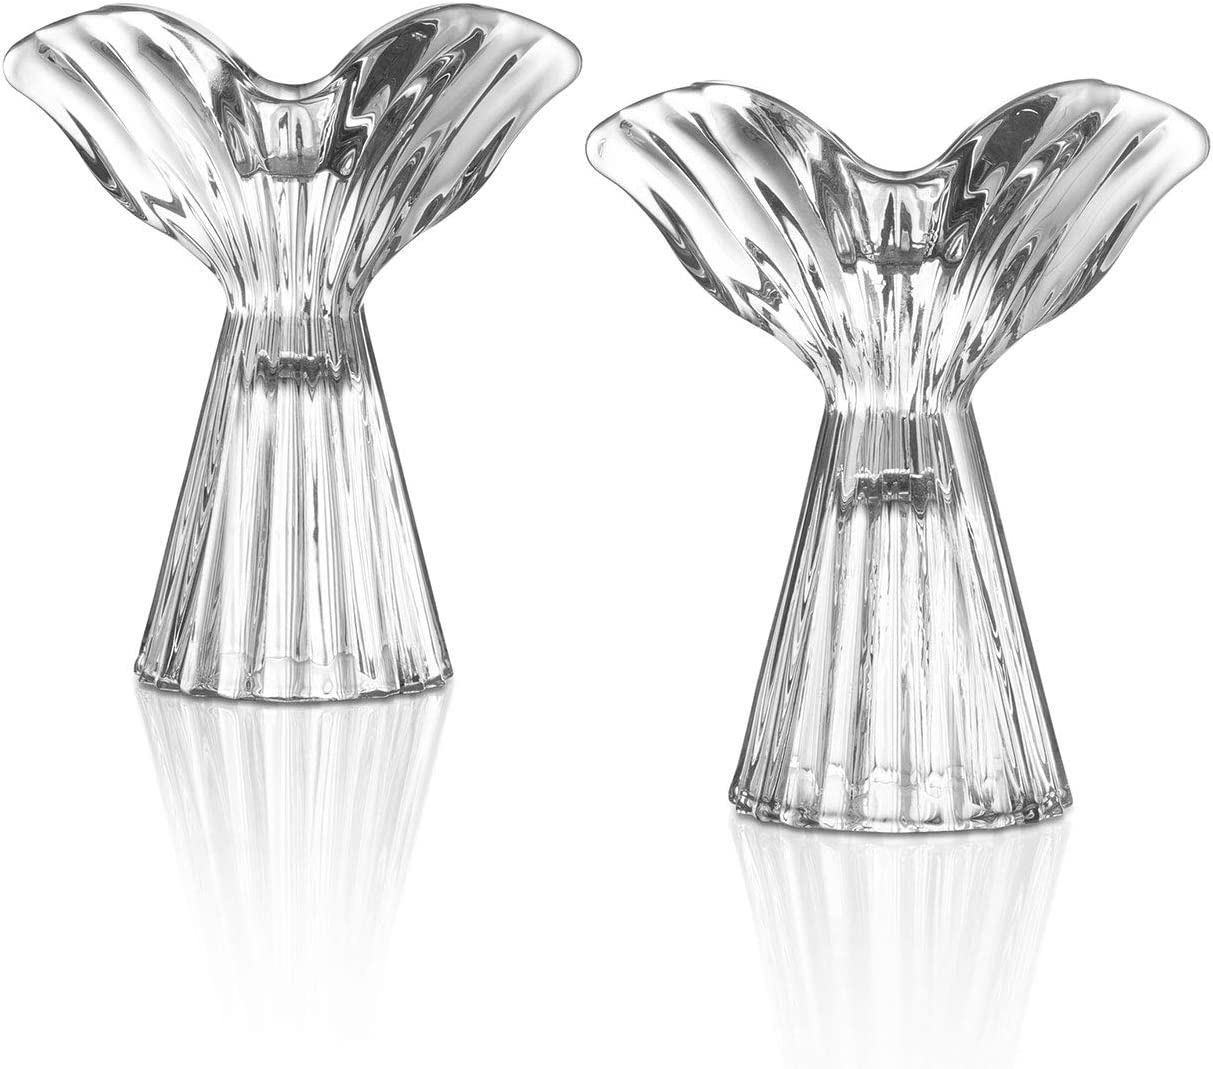 Glass Angel Candle Holder - Clear Taper Holders in Angel Wing Shape, 4.75 Inch Tall, Fits Standard Tapered Candlesticks, for Christmas Decor, Memorial or Sympathy Gift - Set of 2